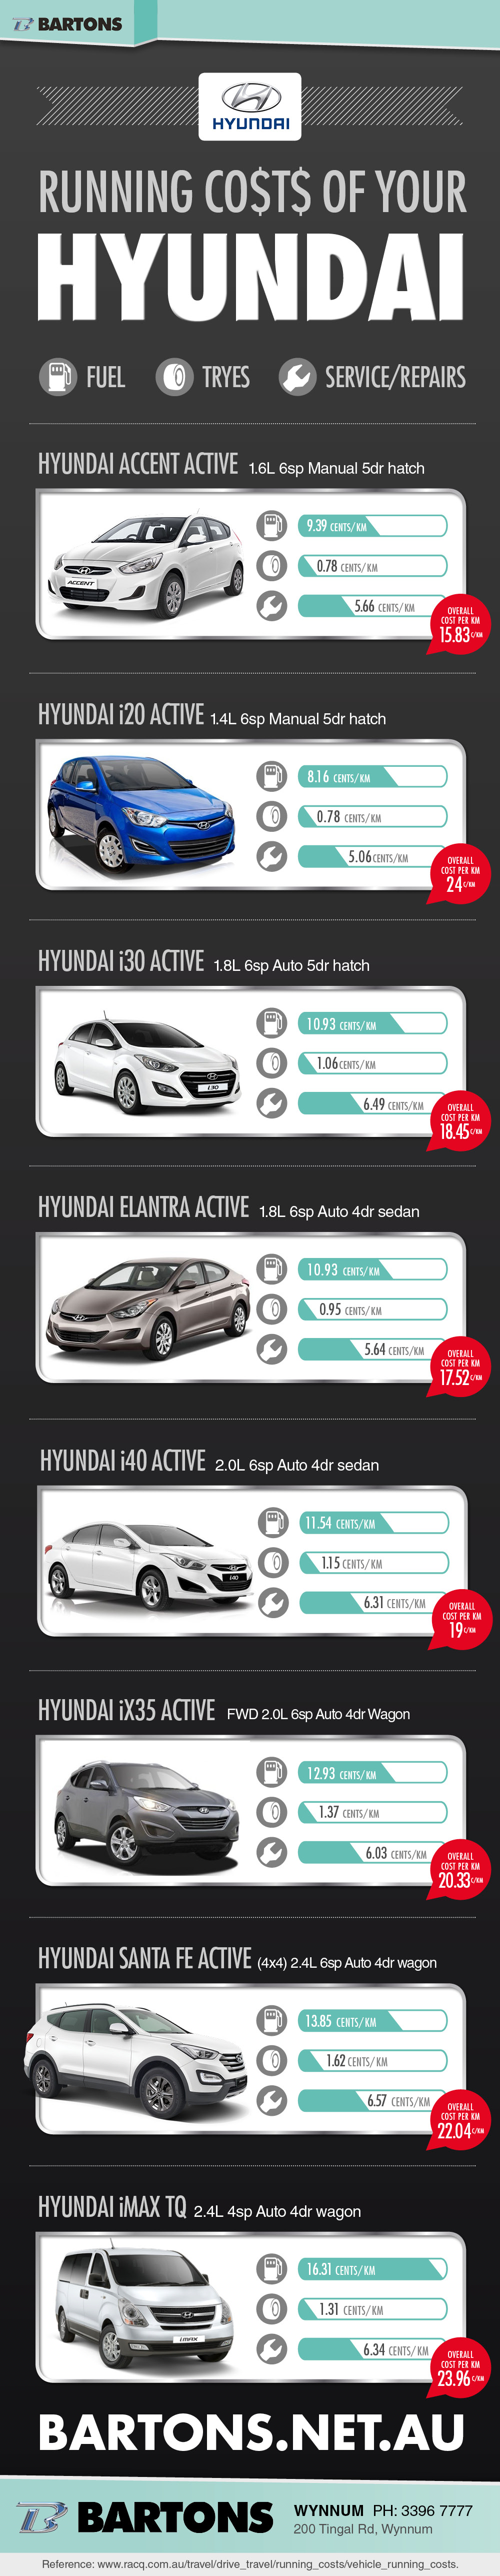 The Running Costs of Your Hyundai Infographic